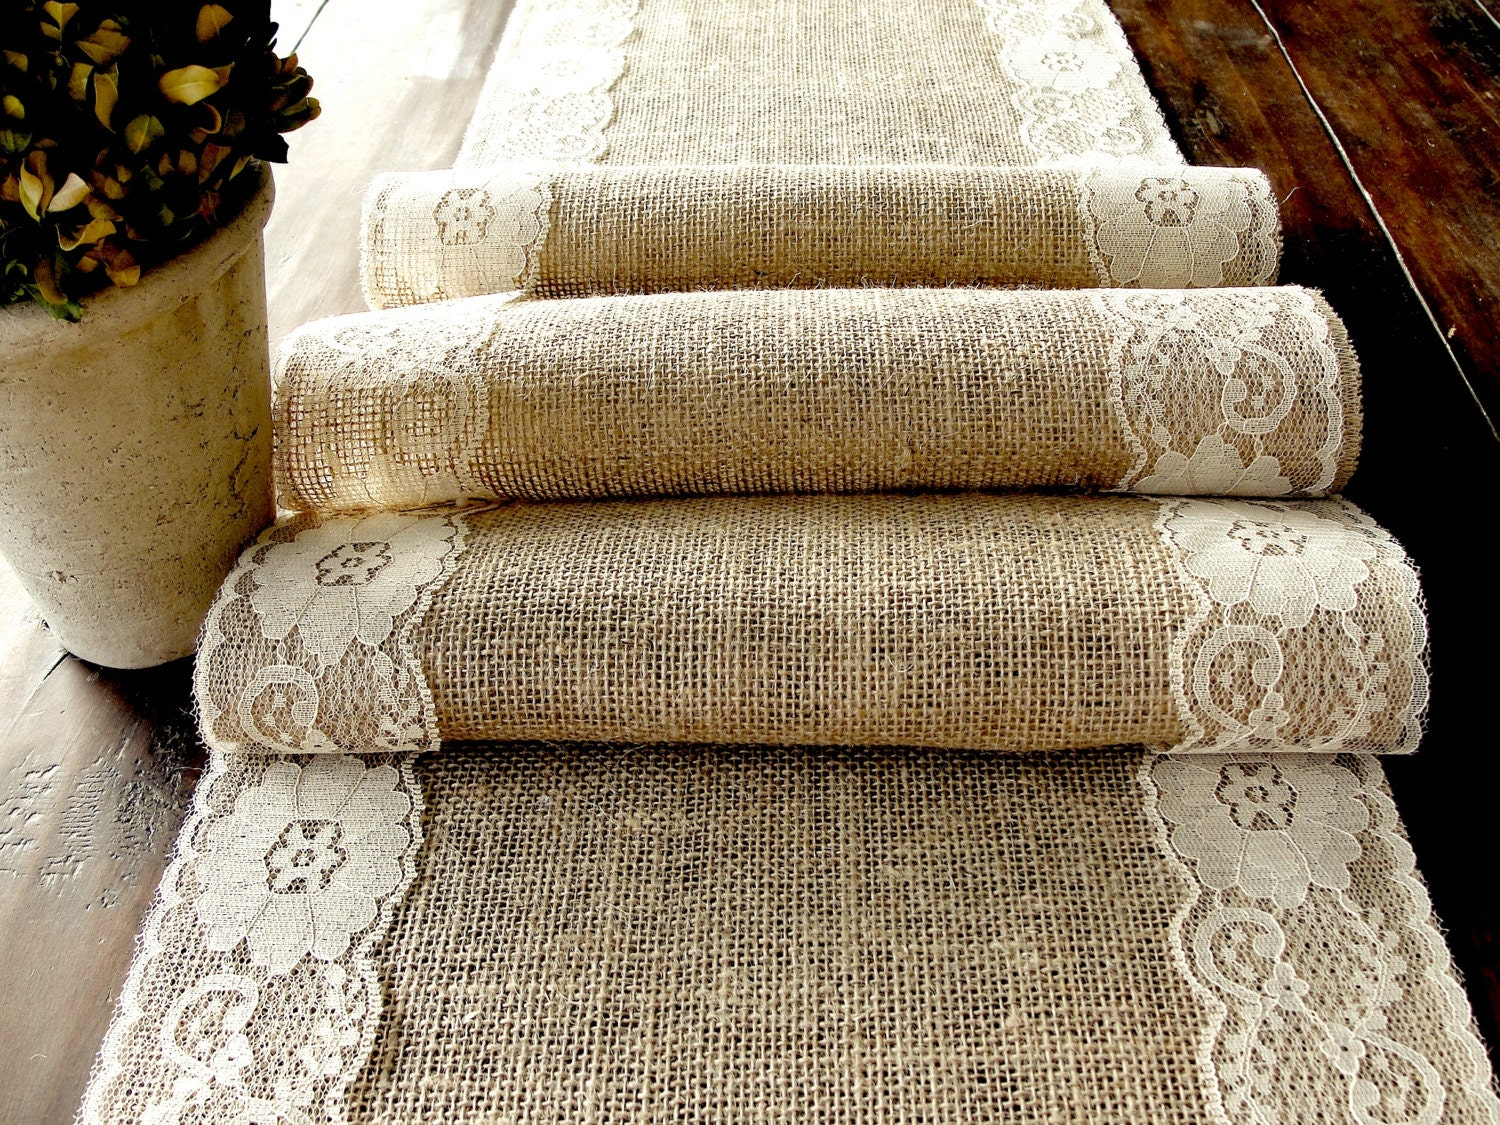 Wedding table runner burlap table runner with country cream lace rustic chic , handmade in the USA - HotCocoaDesign